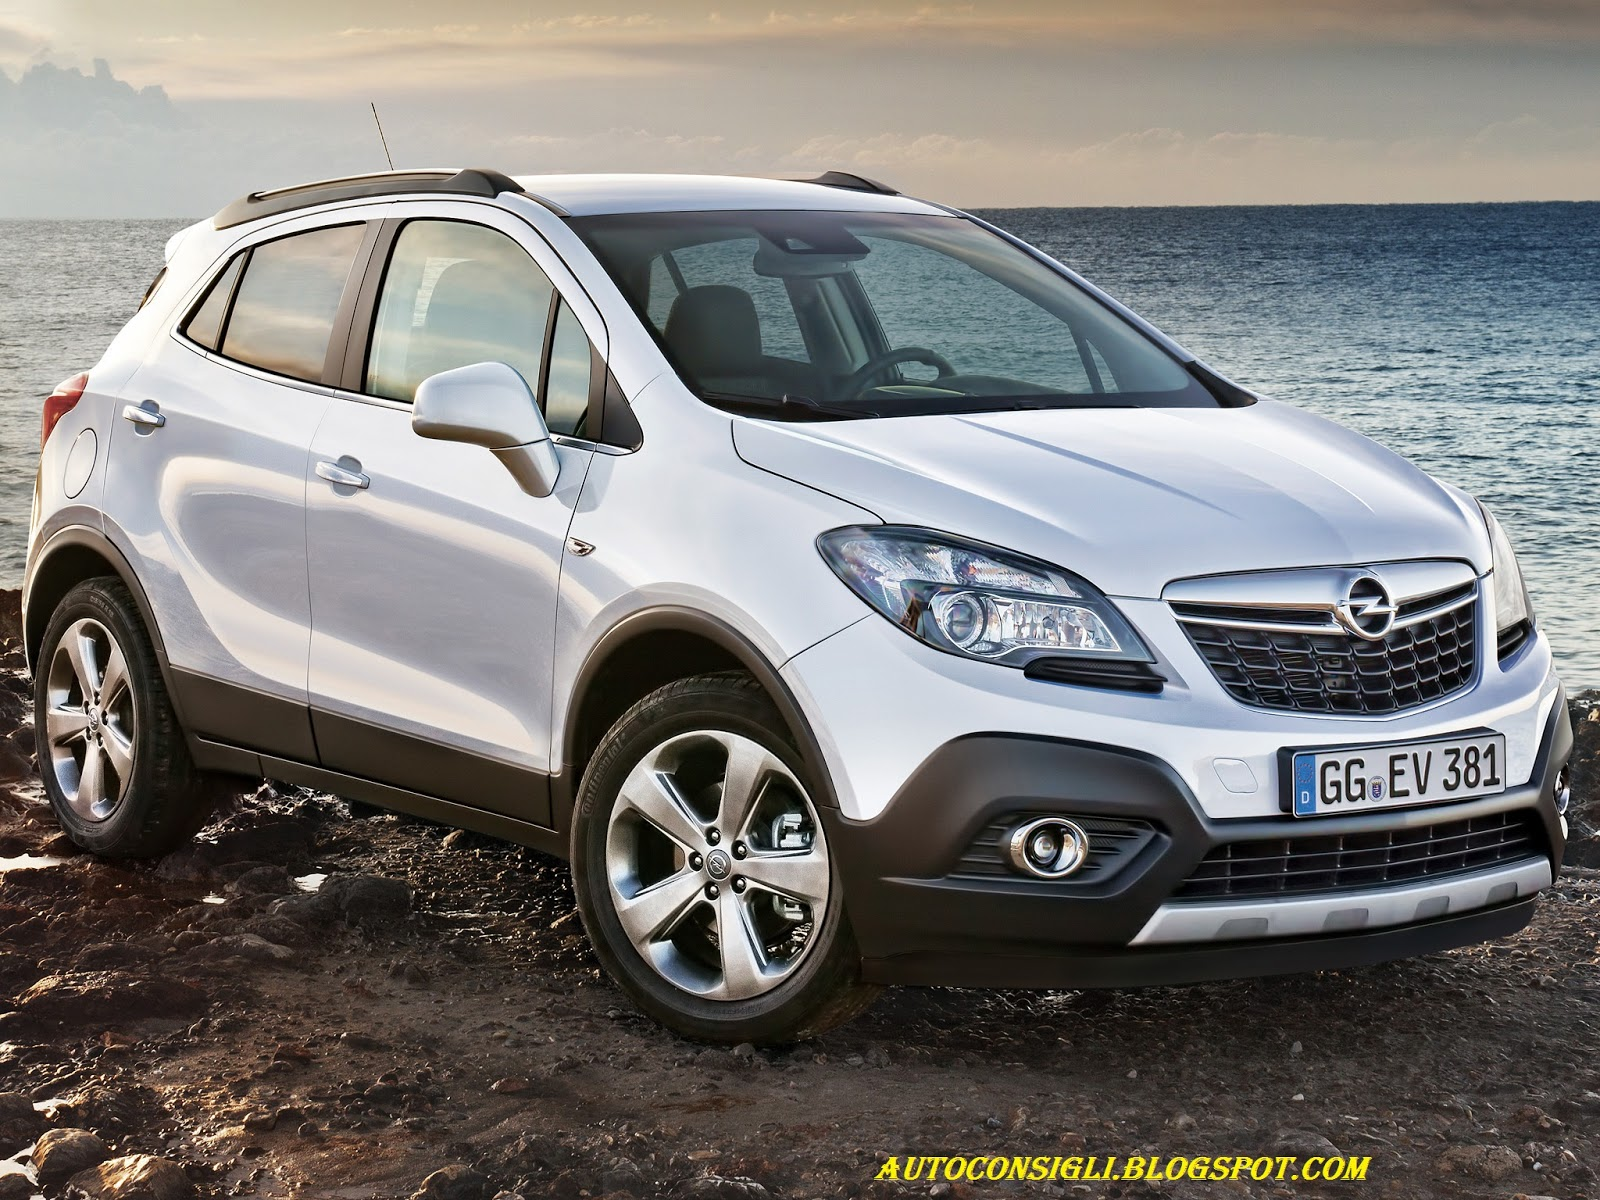 car al top 33 opel mokka il 1 4 litri turbo disponibile anche con la trazione anteriore. Black Bedroom Furniture Sets. Home Design Ideas